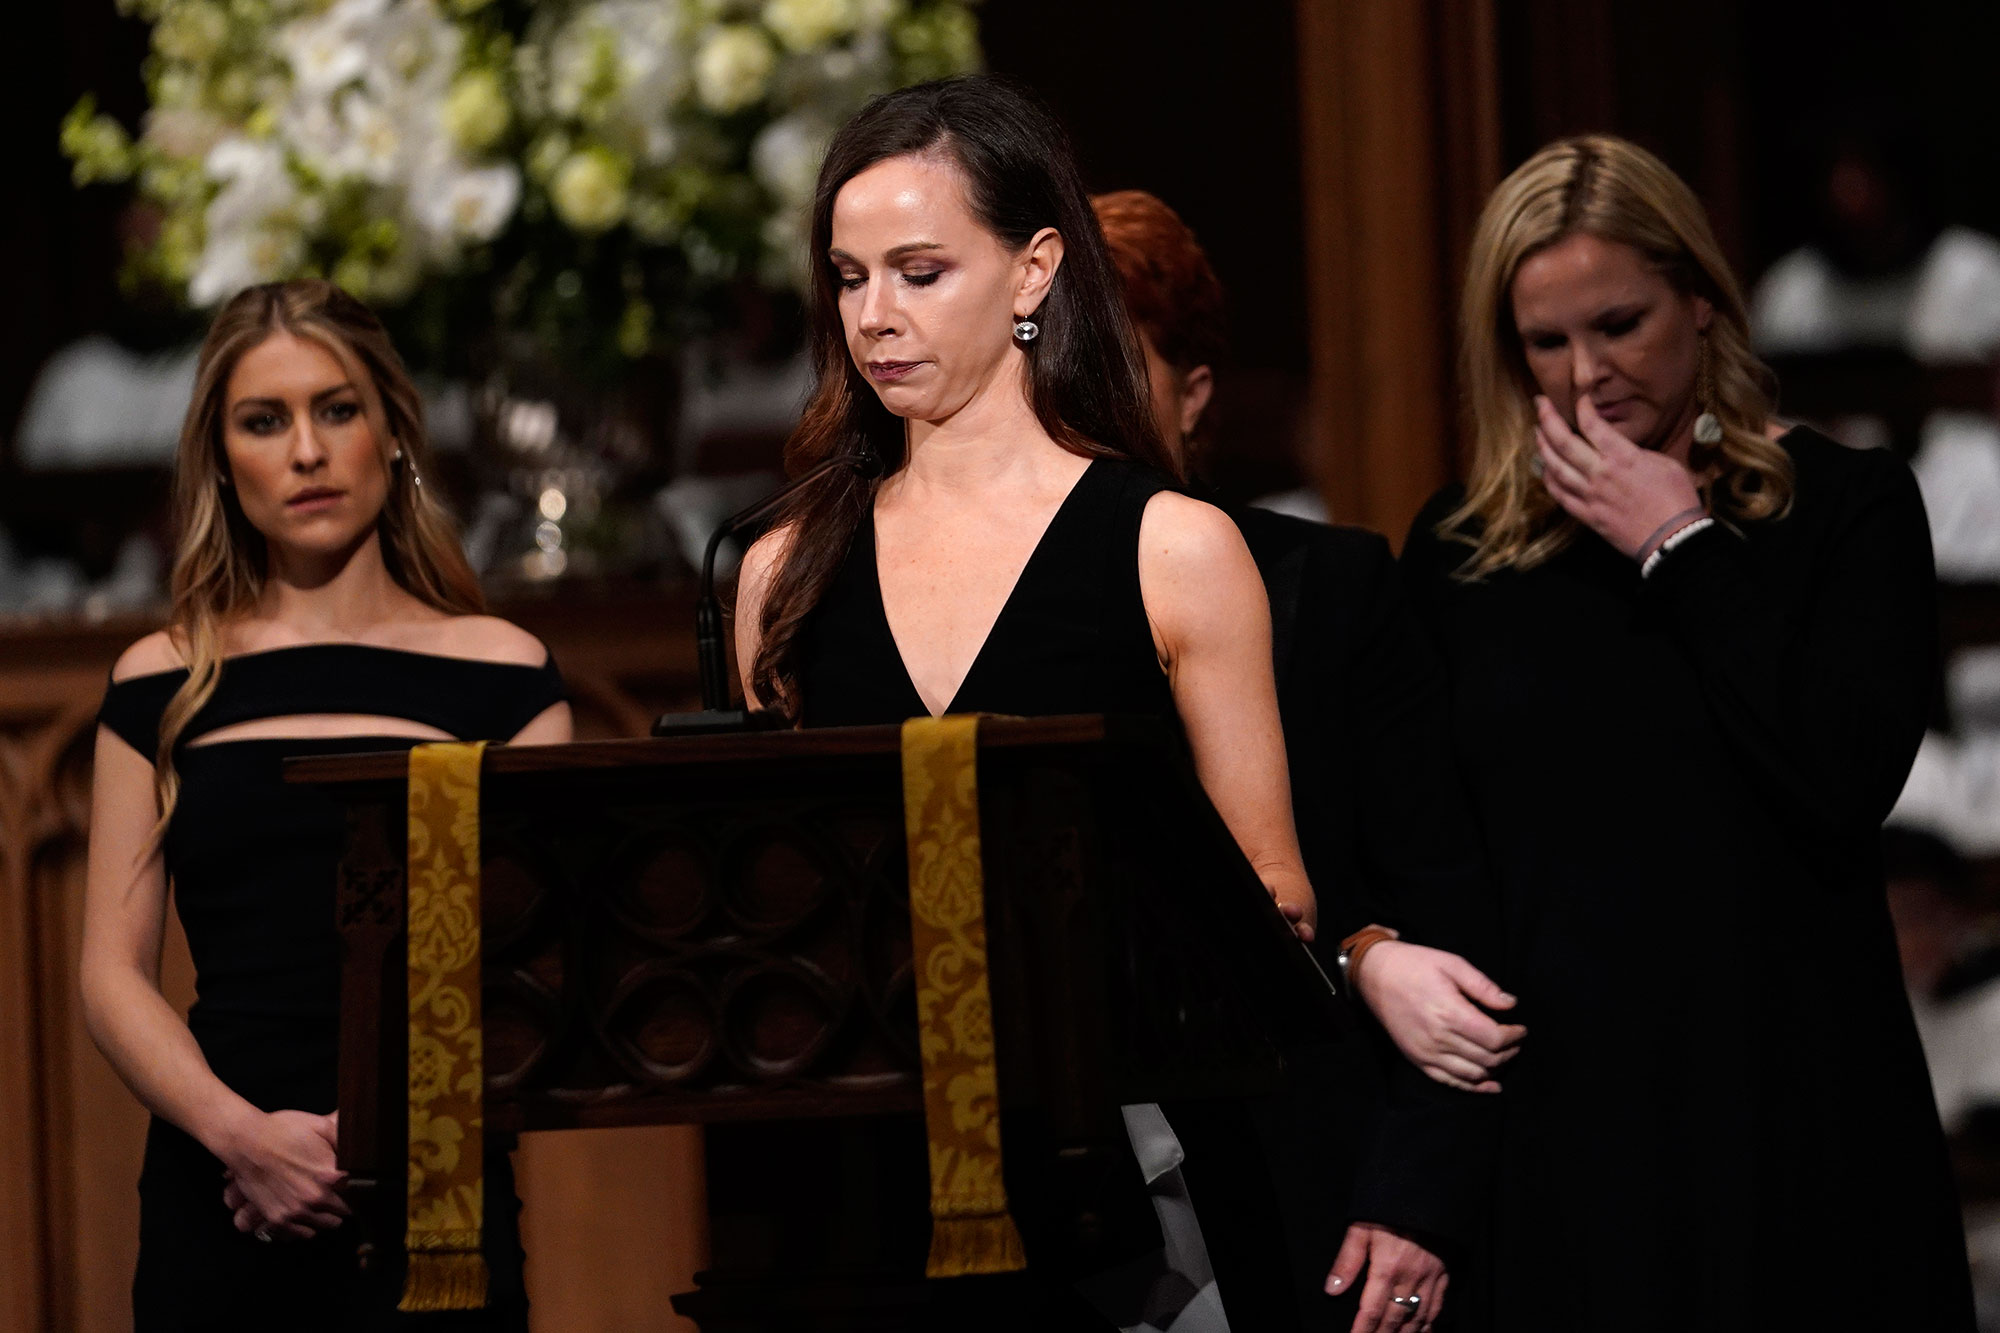 <div class='meta'><div class='origin-logo' data-origin='none'></div><span class='caption-text' data-credit='David J. Phillip-Pool/Getty Images'>Granddaughter Barbara Pierce Bush reads scripture during a funeral service for former President George H.W. Bush at St. Martins Episcopal Church on December 6, 2018 in Houston.</span></div>